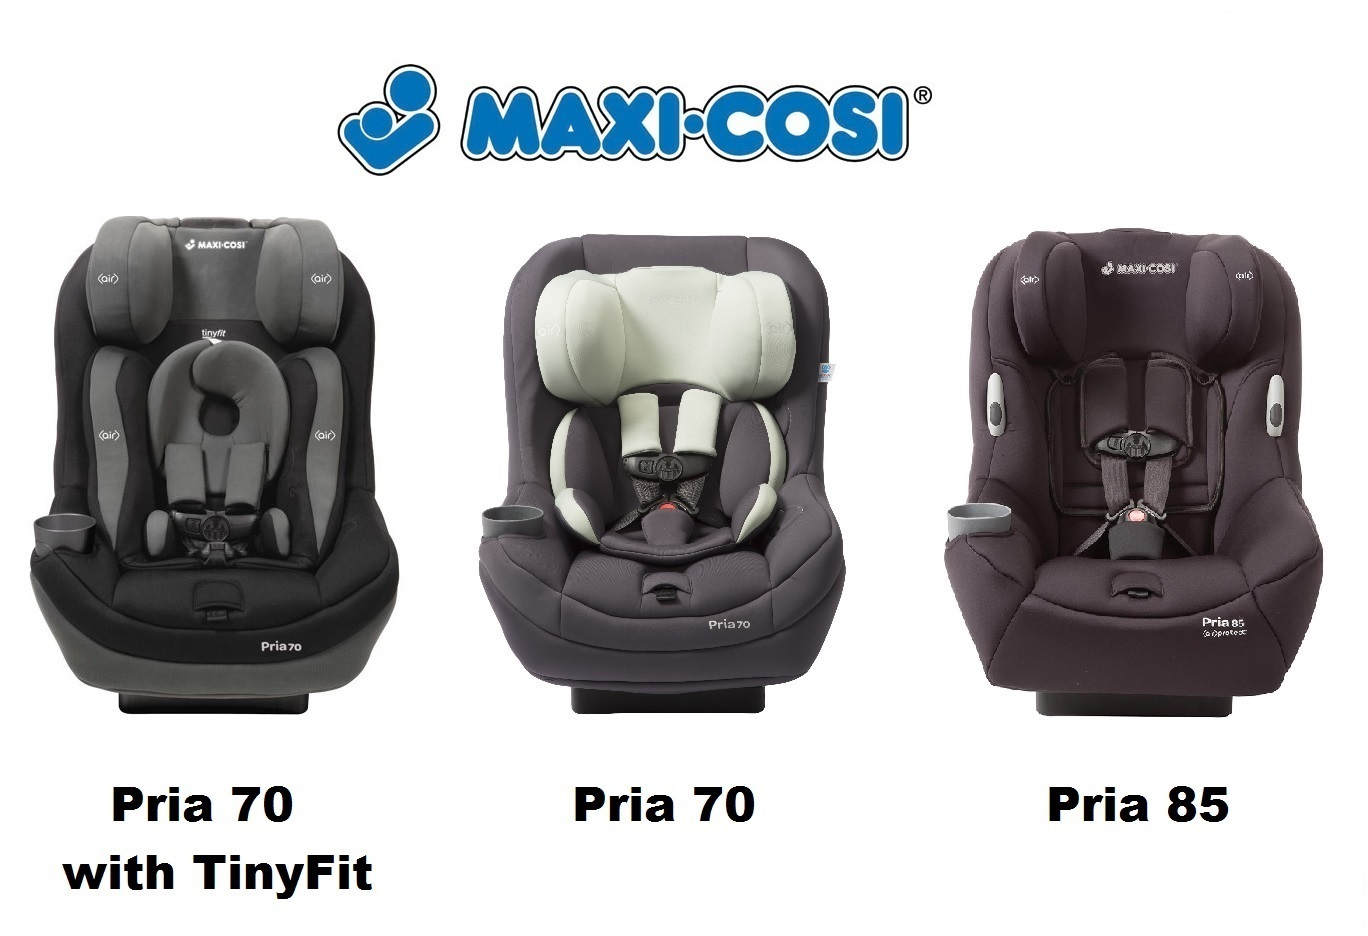 maxi cosi base instructions